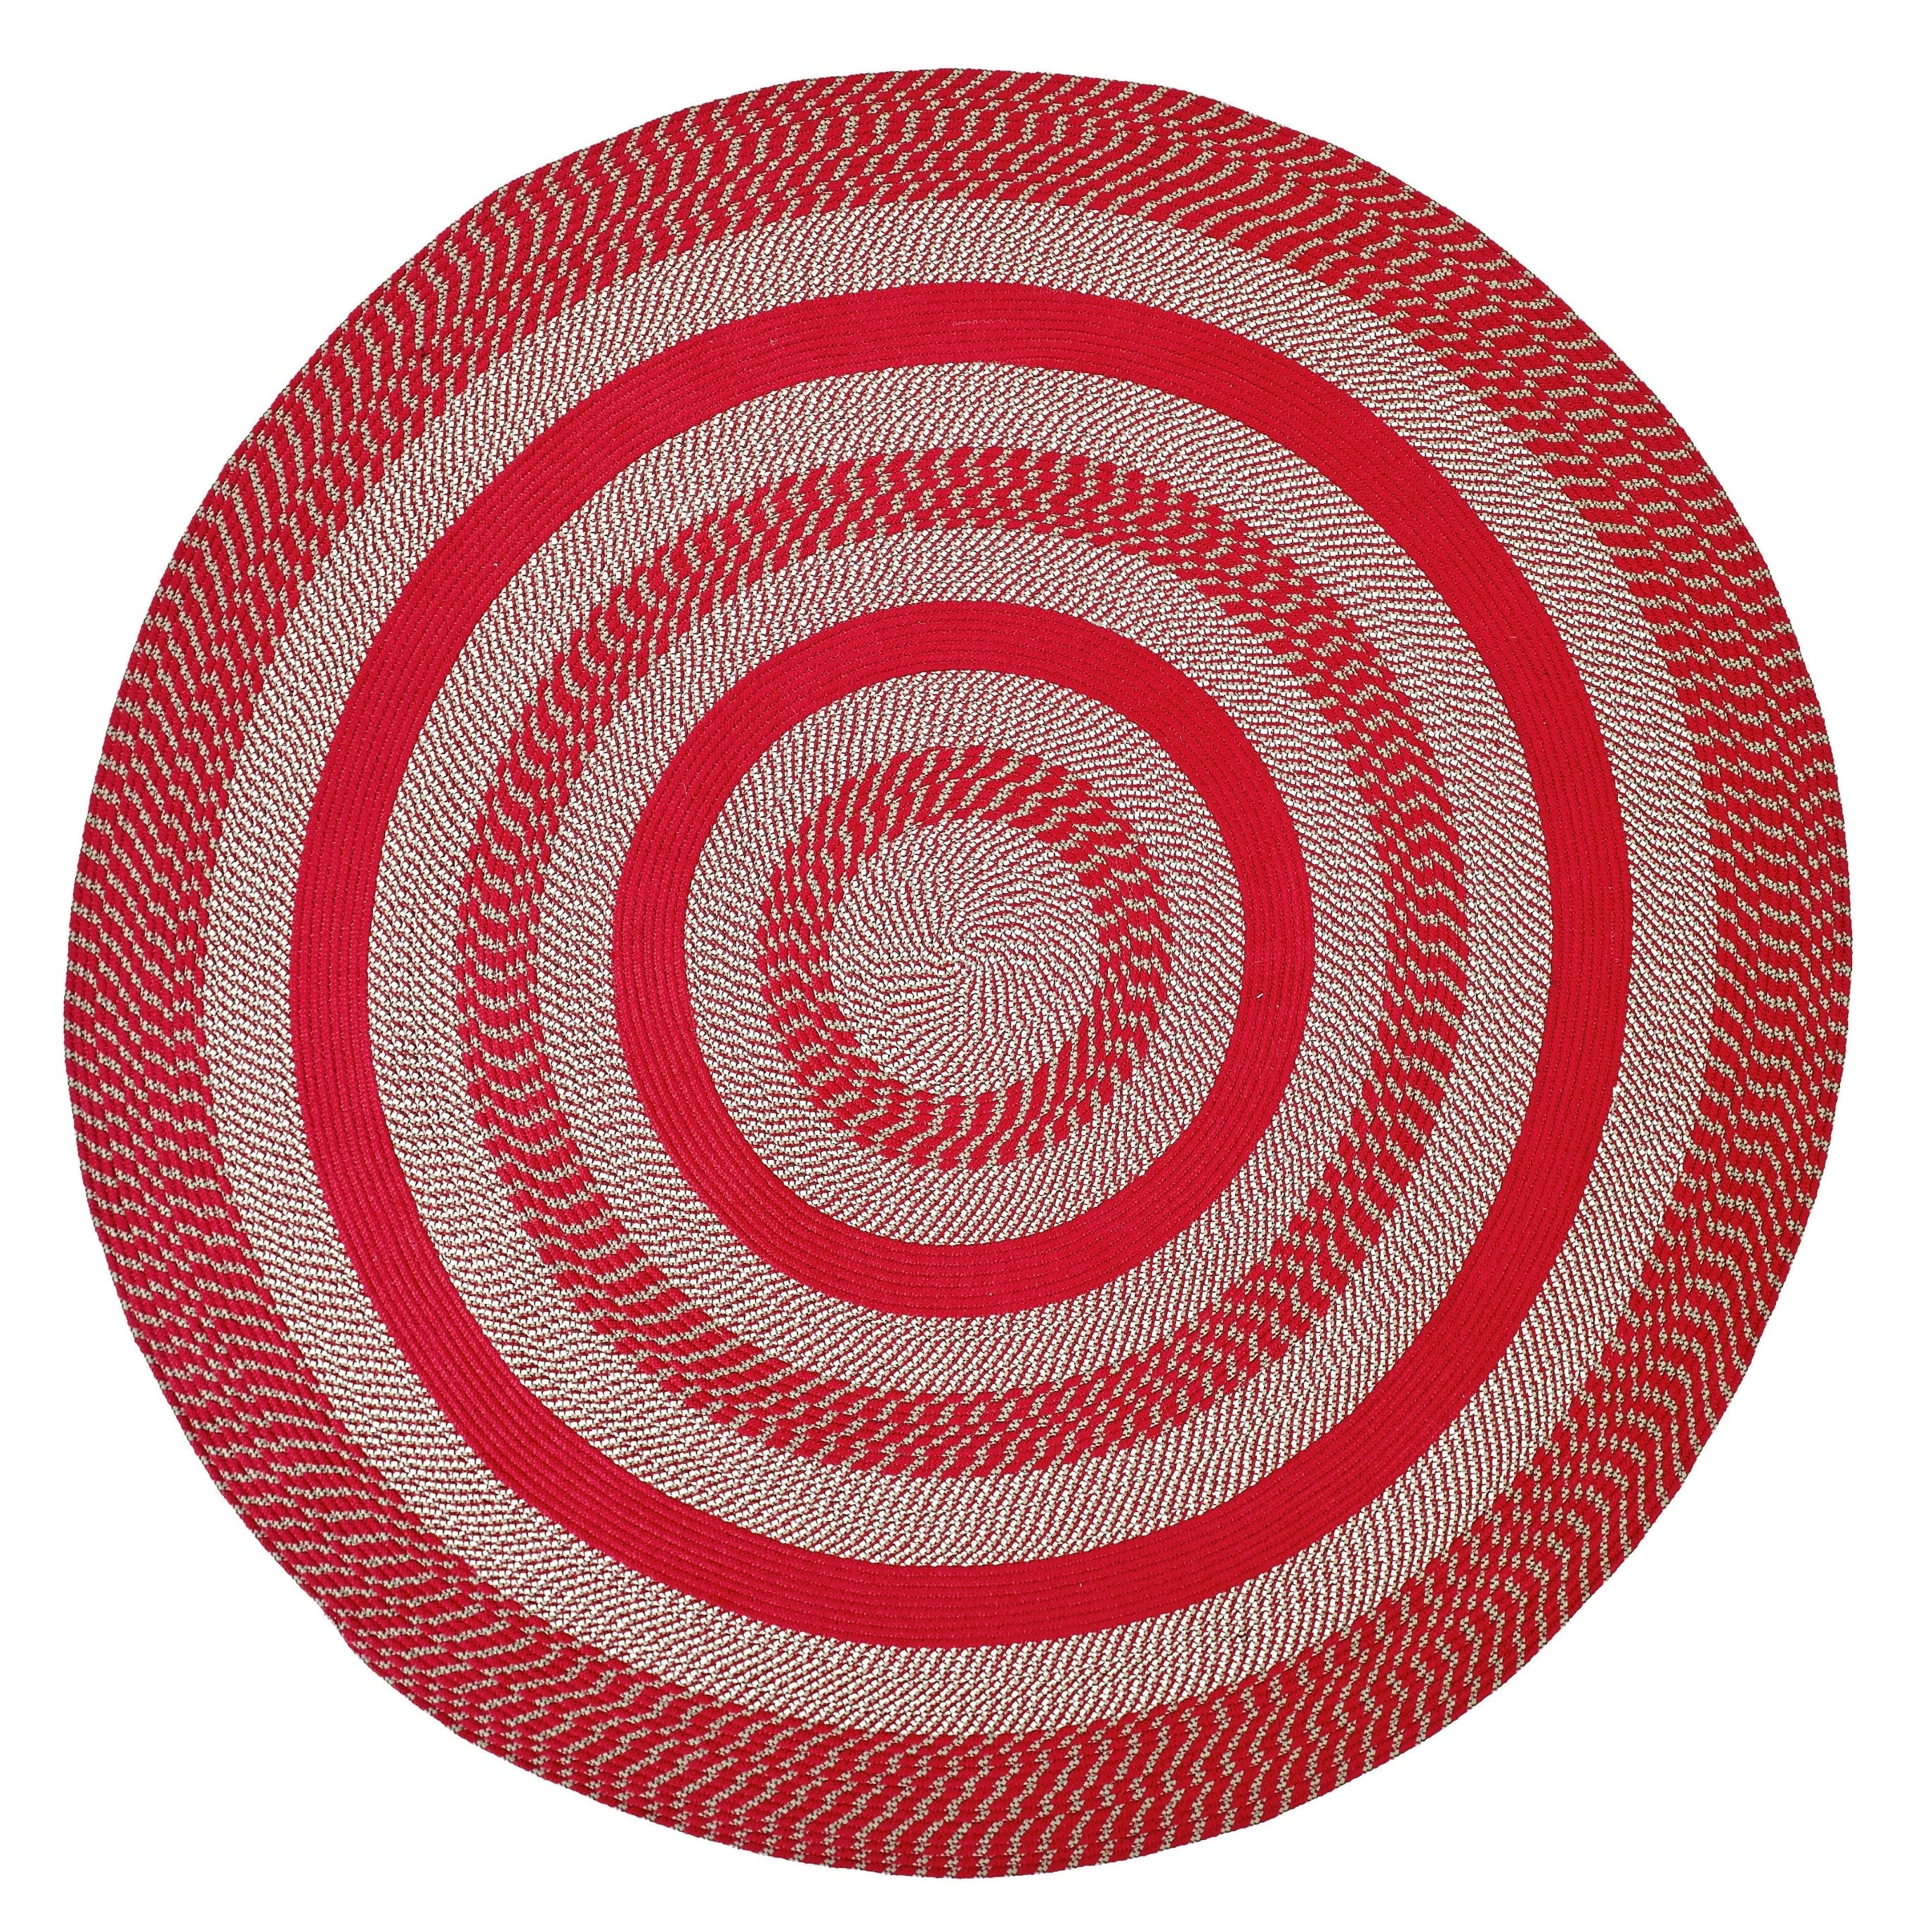 Better Trends  Newport Barn Red Round Braided Area Rug - 6'